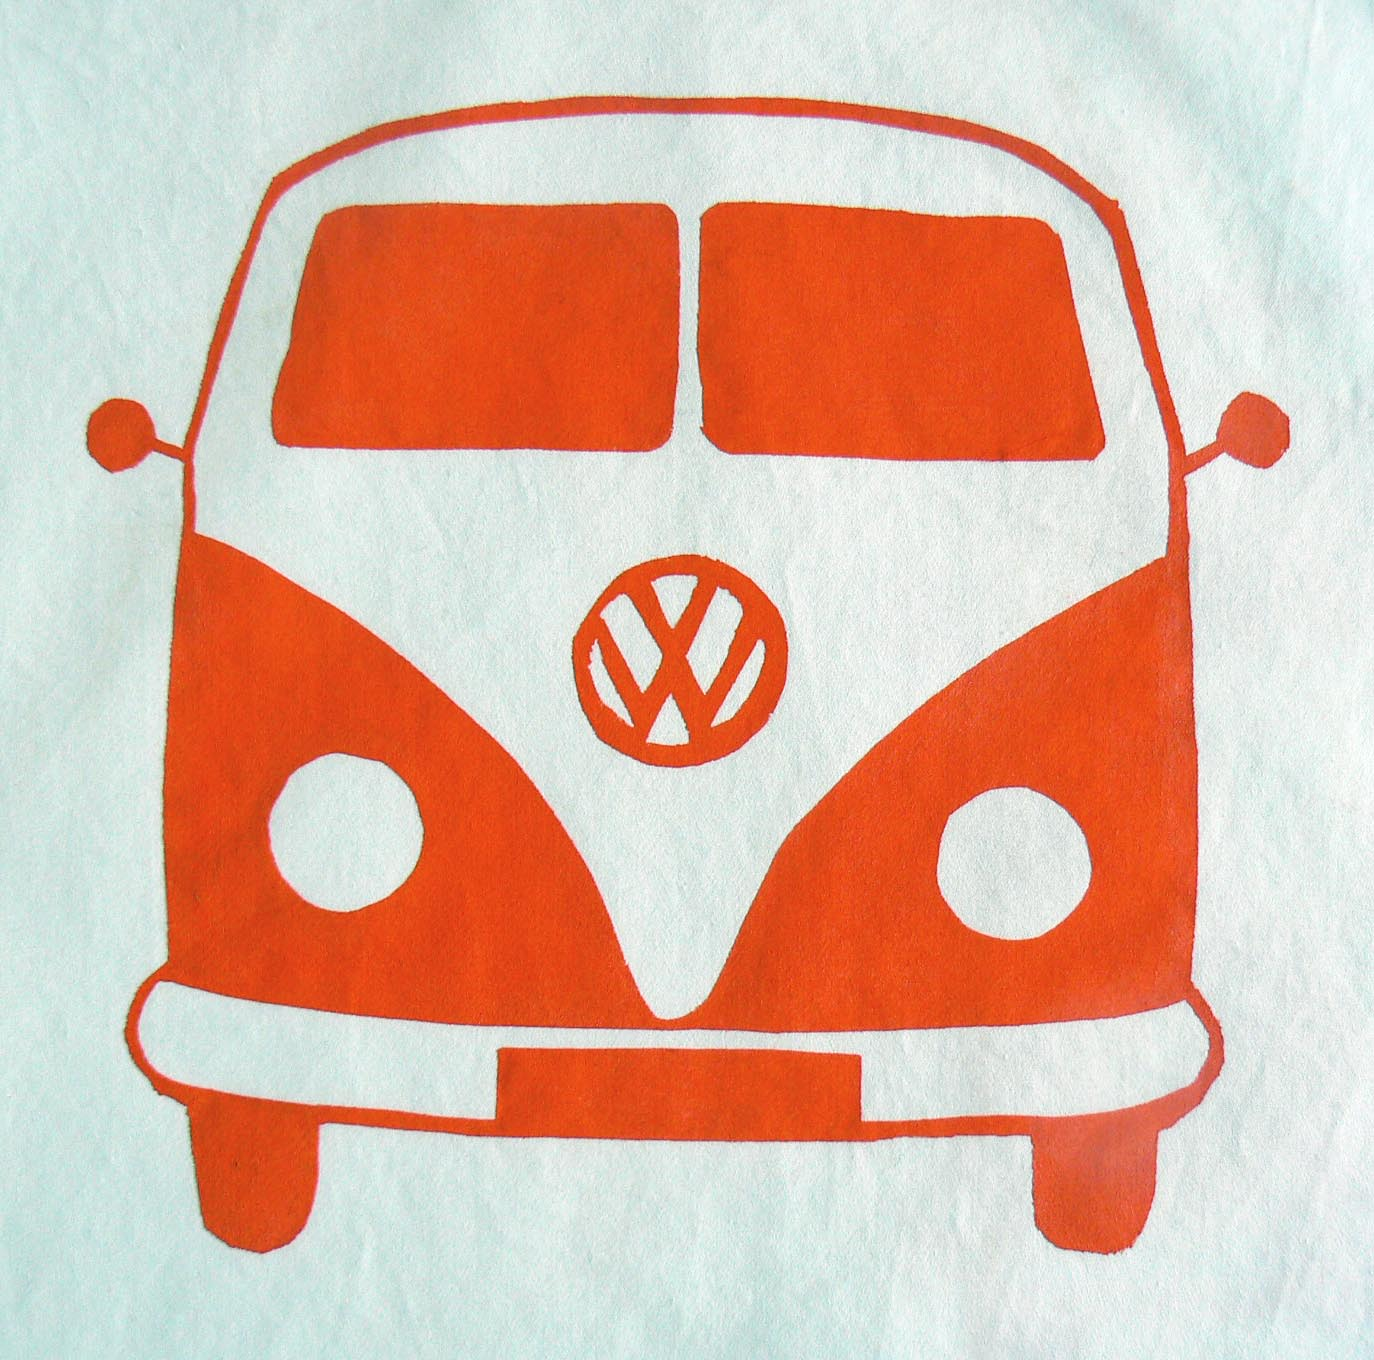 an image of a VW bus that